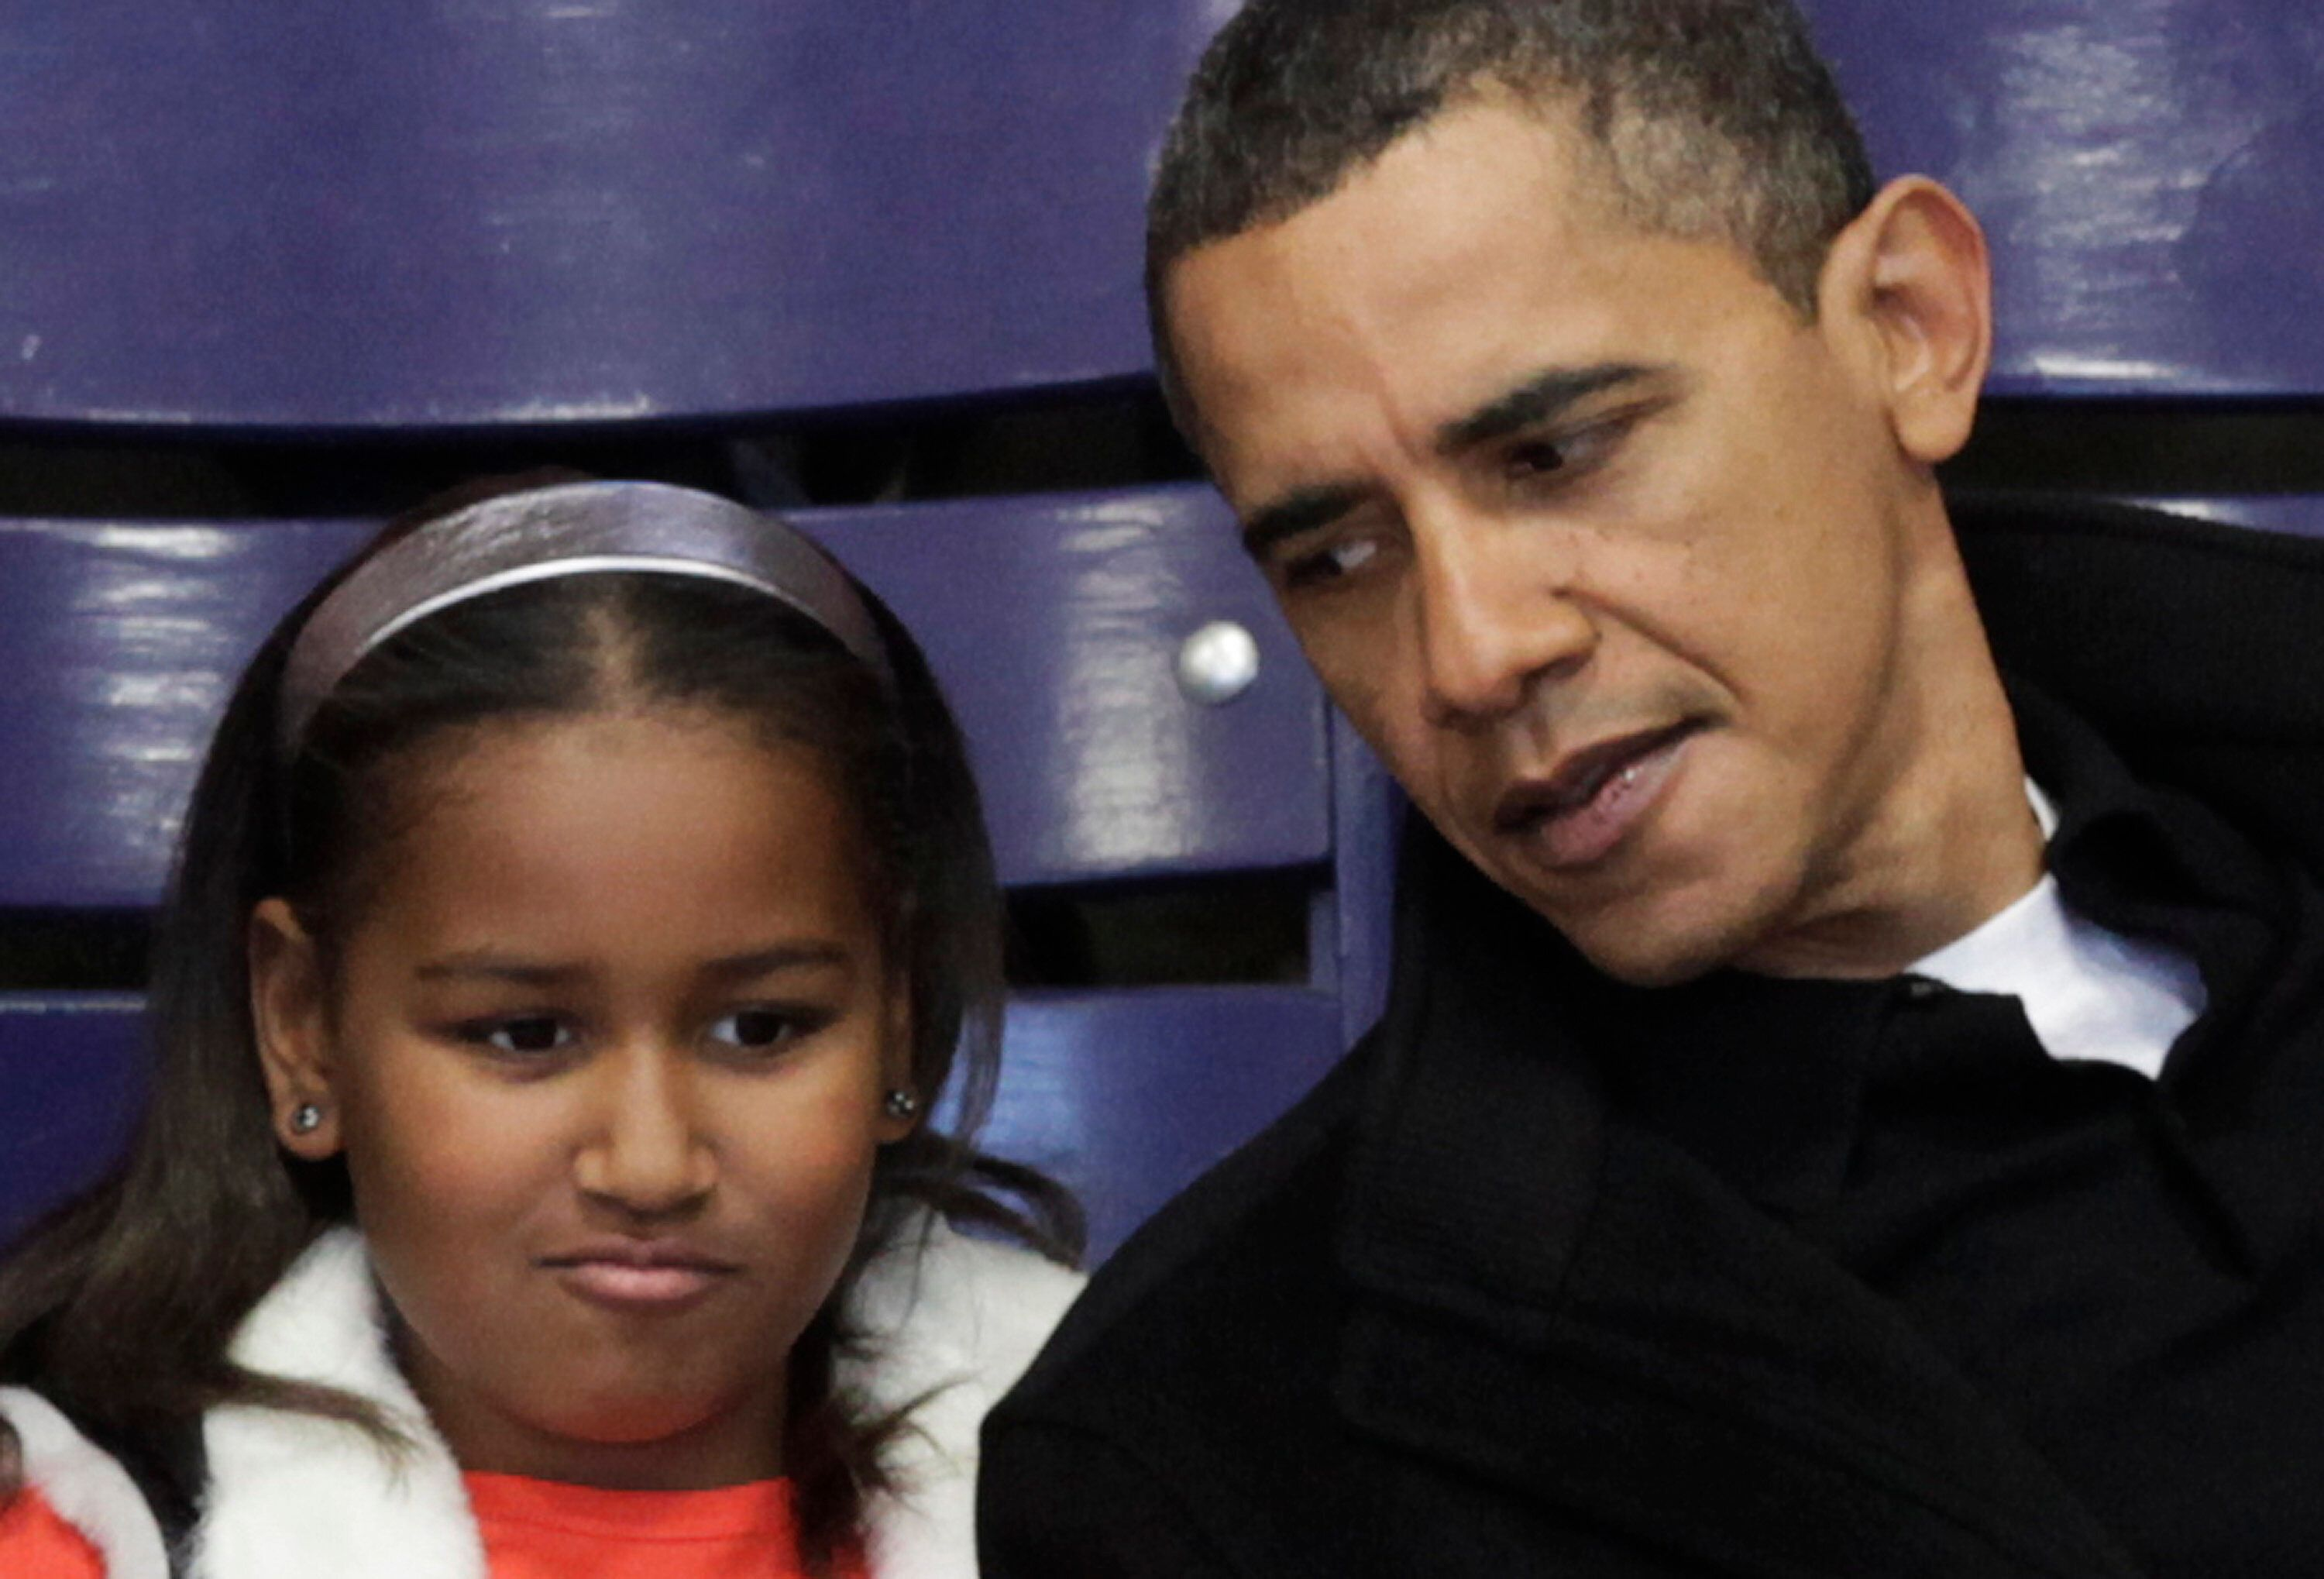 Then-President Barack Obama talks to his daughter Sasha during a Howard University basketball game in 2010, around the time h